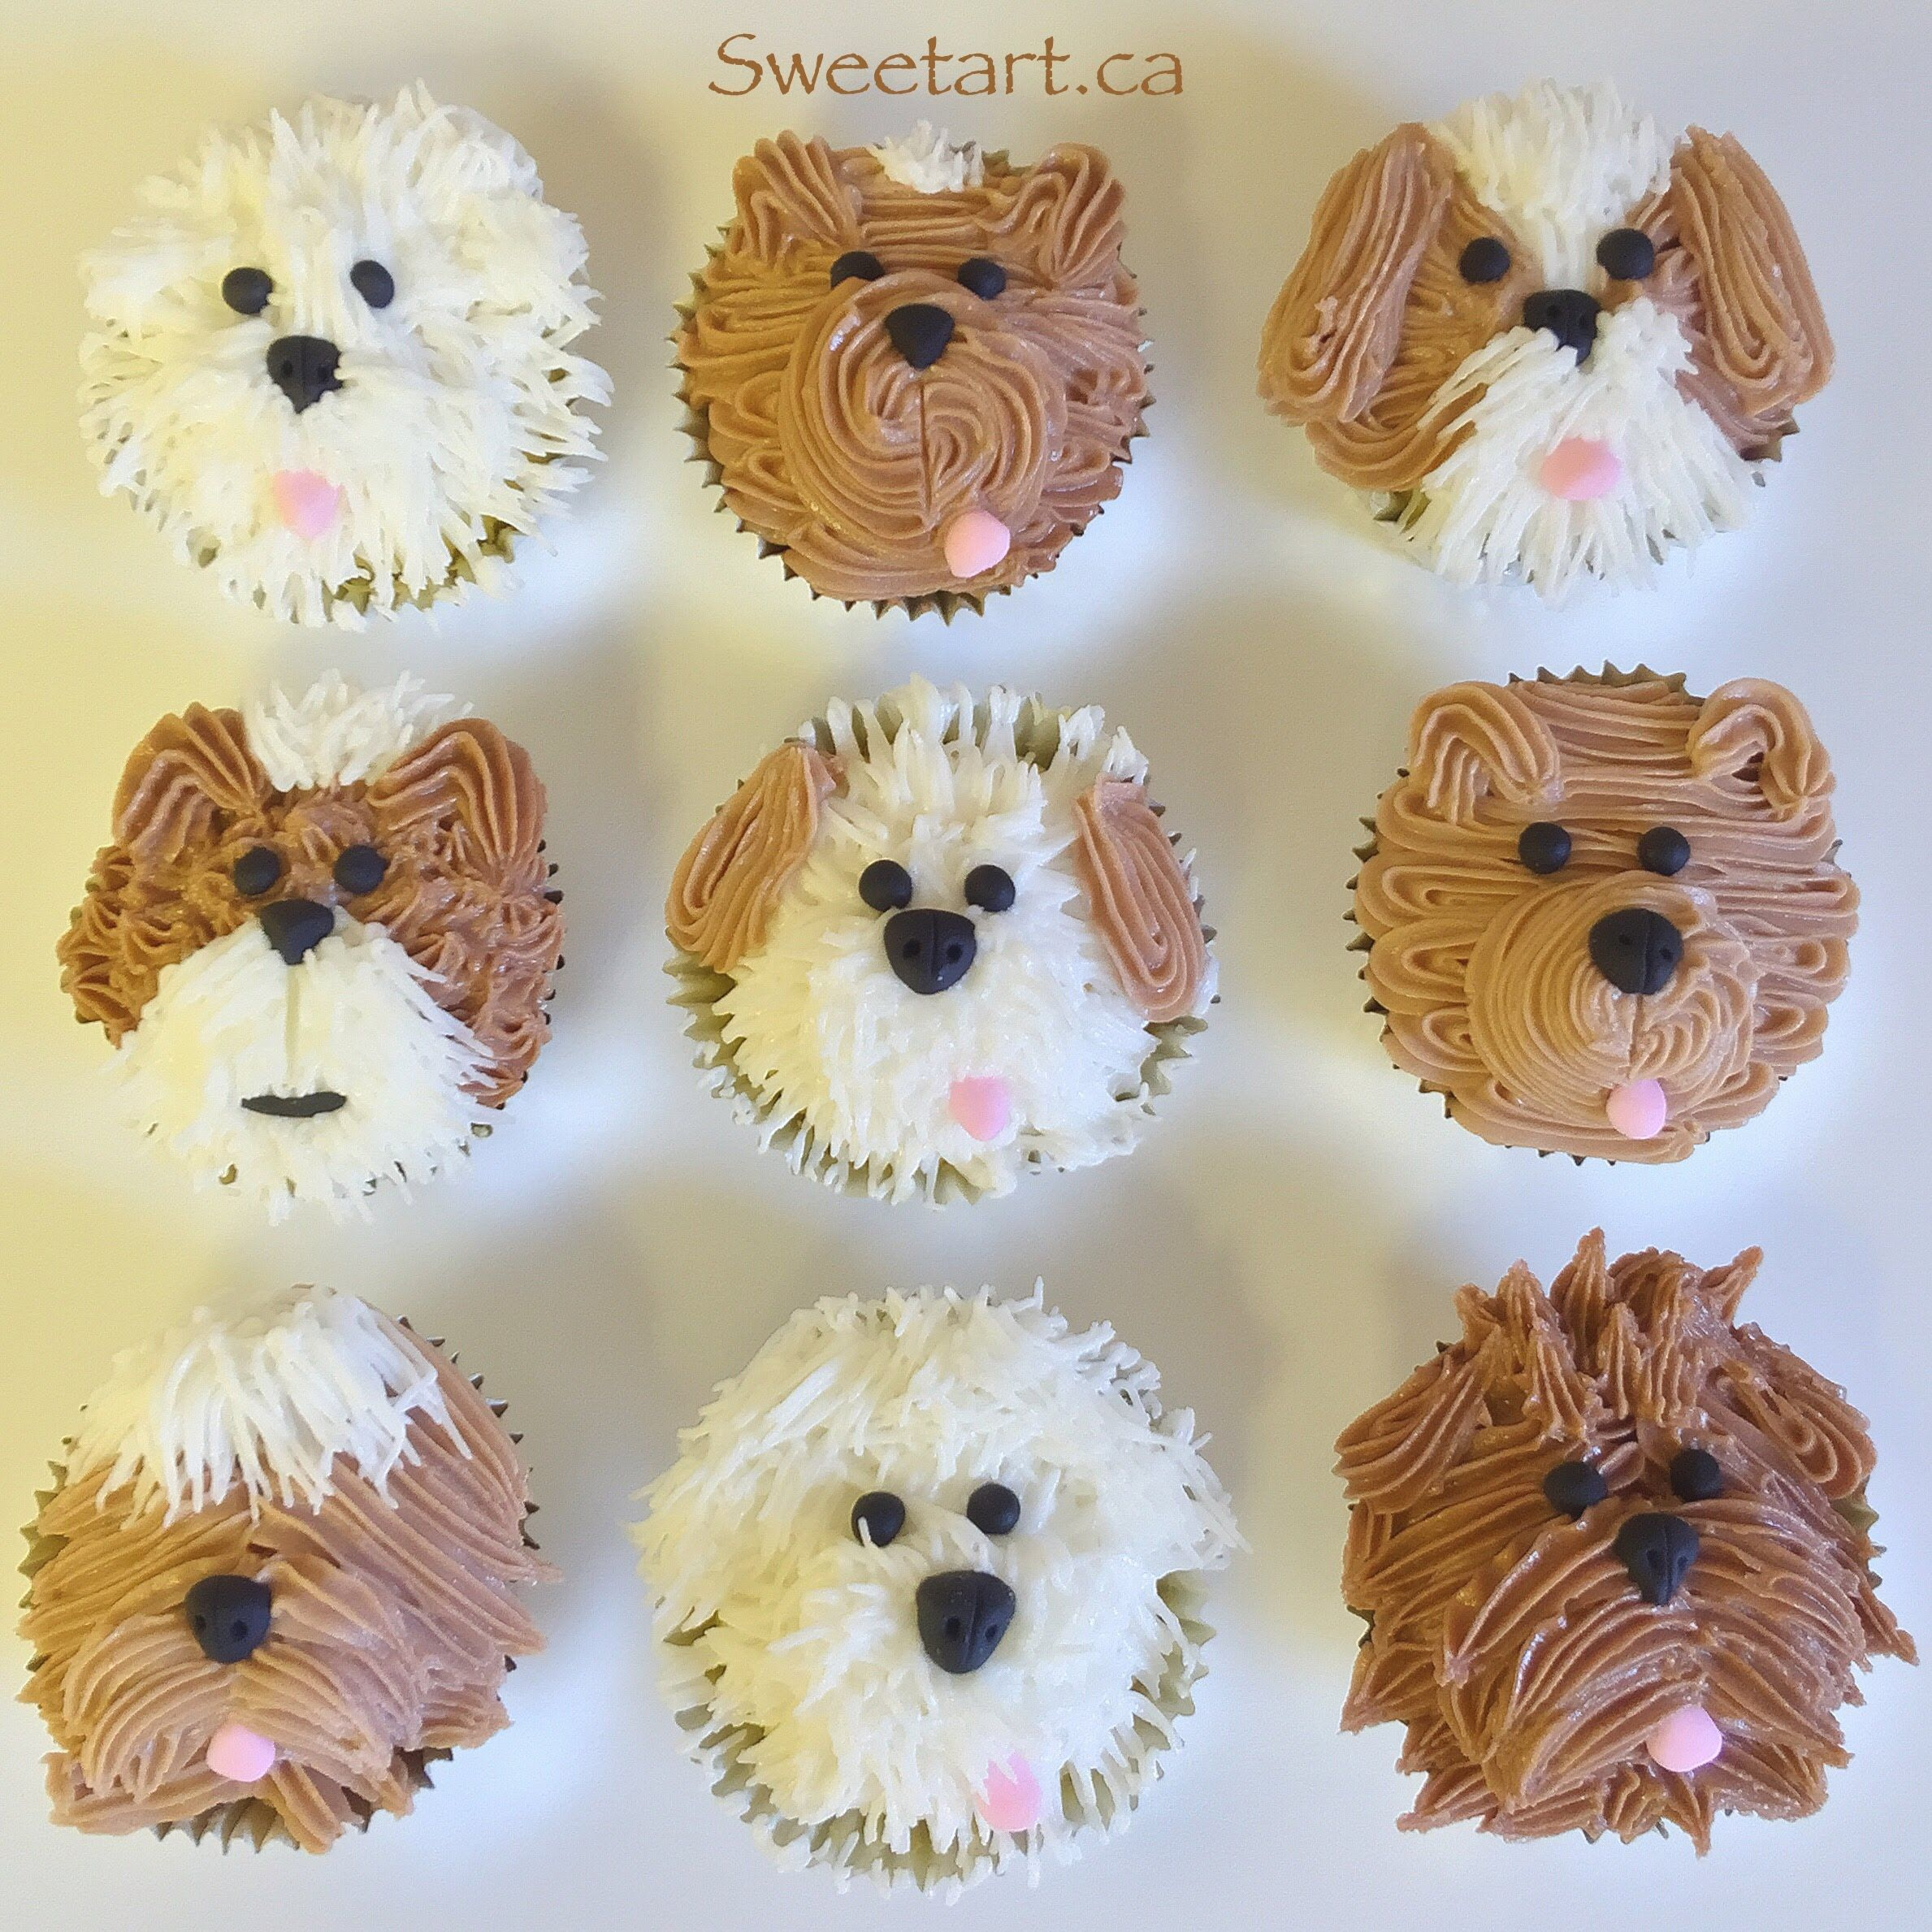 Can Dogs Eat Icing Sugar